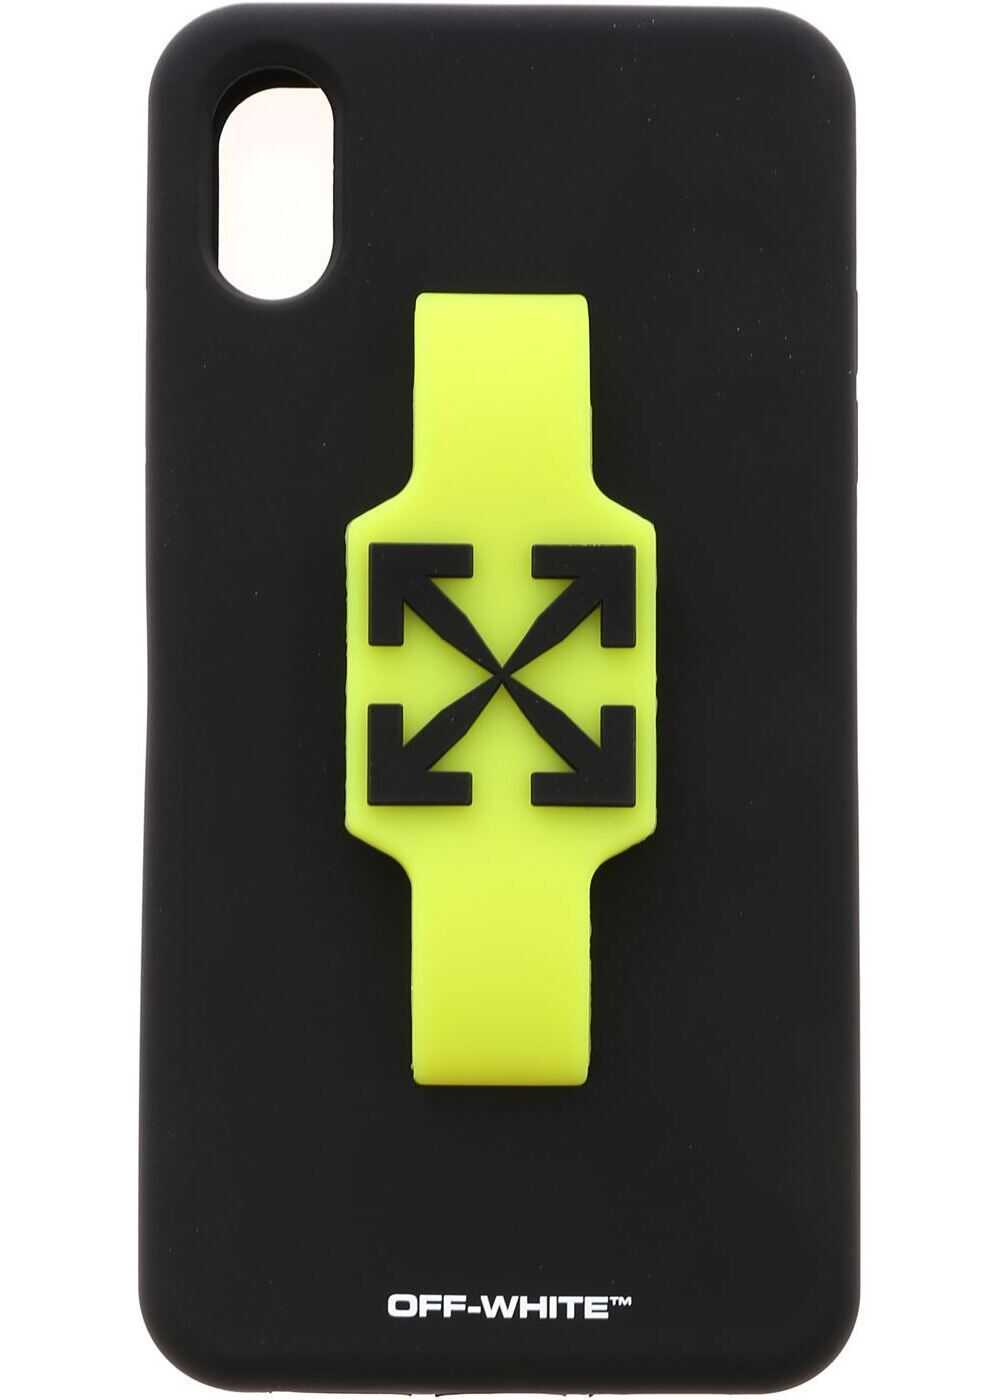 W Fing Cover In Black And Neon Yellow thumbnail